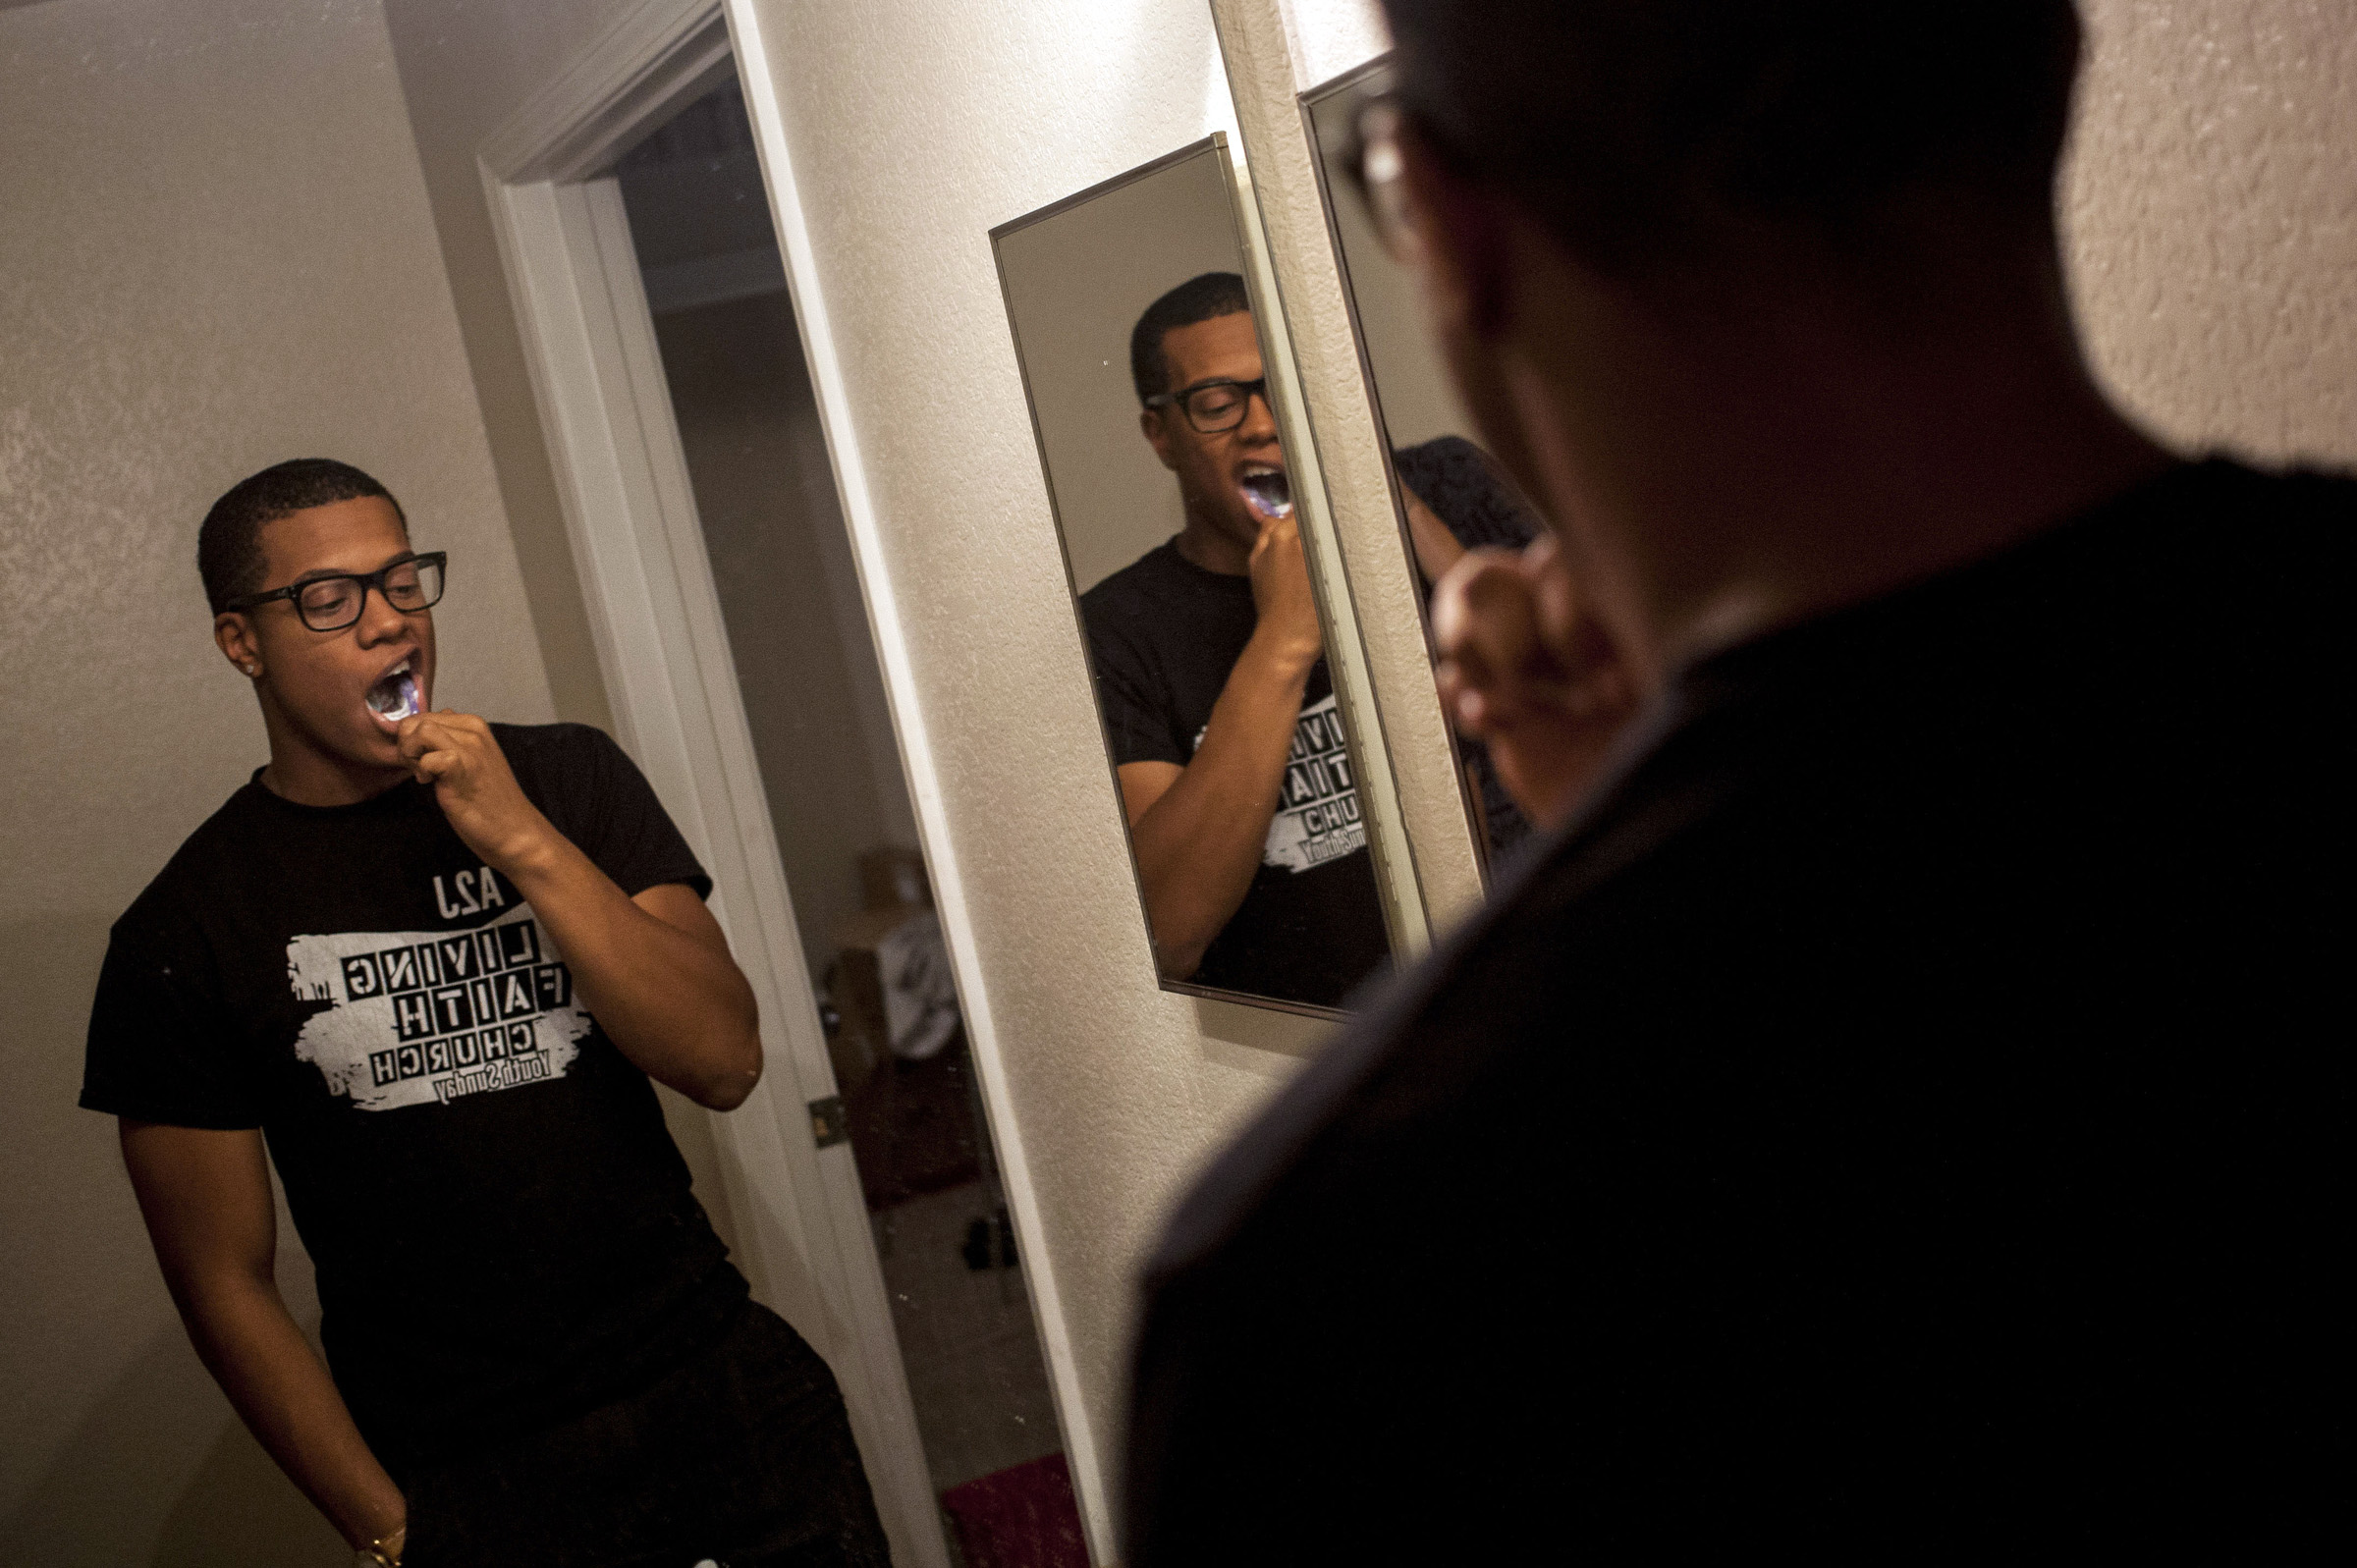 At the end of a long day, Trenton Carson brushes his teeth in his Mt. Pleasant apartment. (Photo: Josephine Norris/GroundTruth)